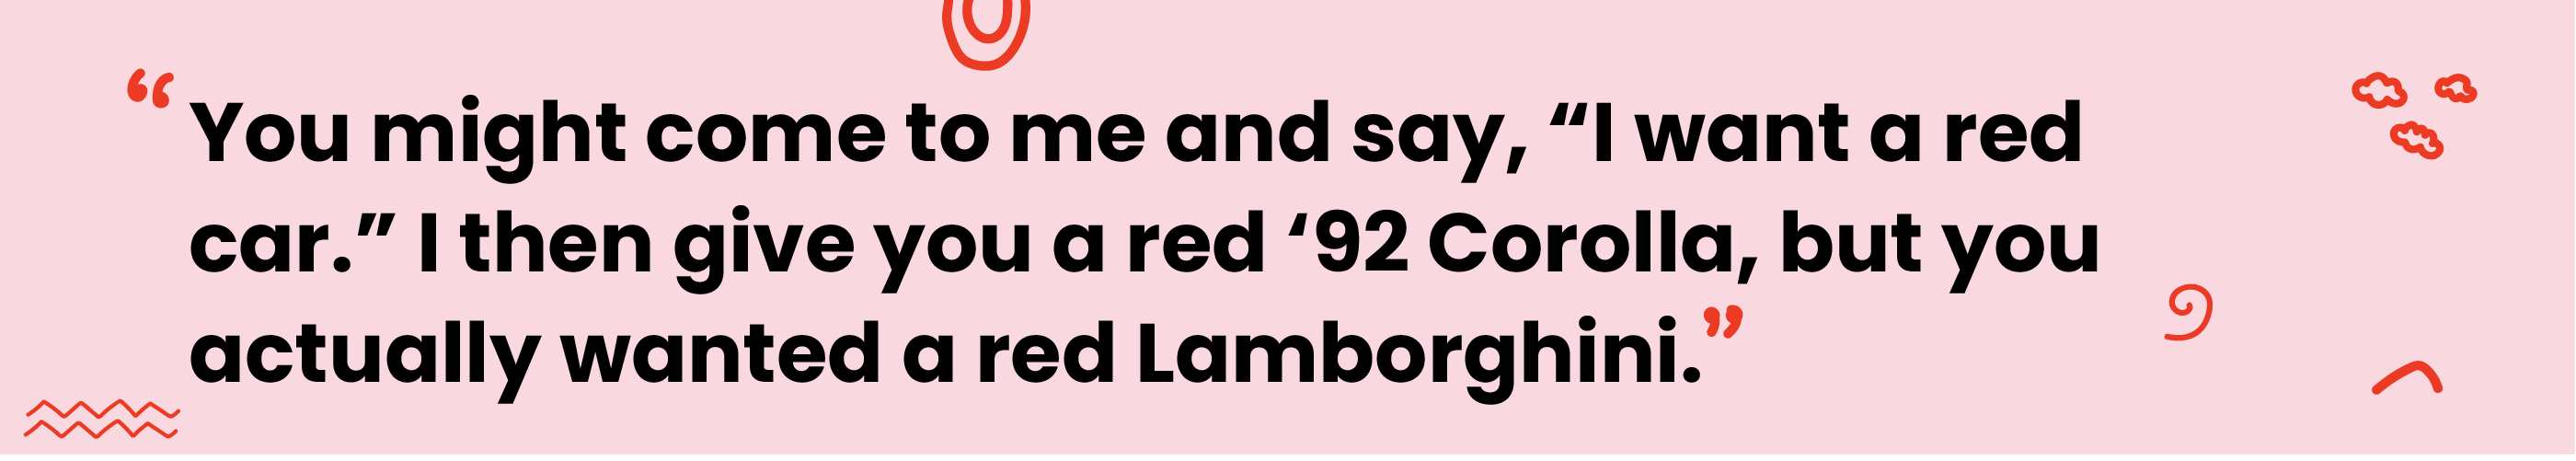 """Quote reads """"you might come to me and say, """"I want a red car."""" I then give you a red '92 Corolla, but you actually wanted a red Lamborghini"""""""